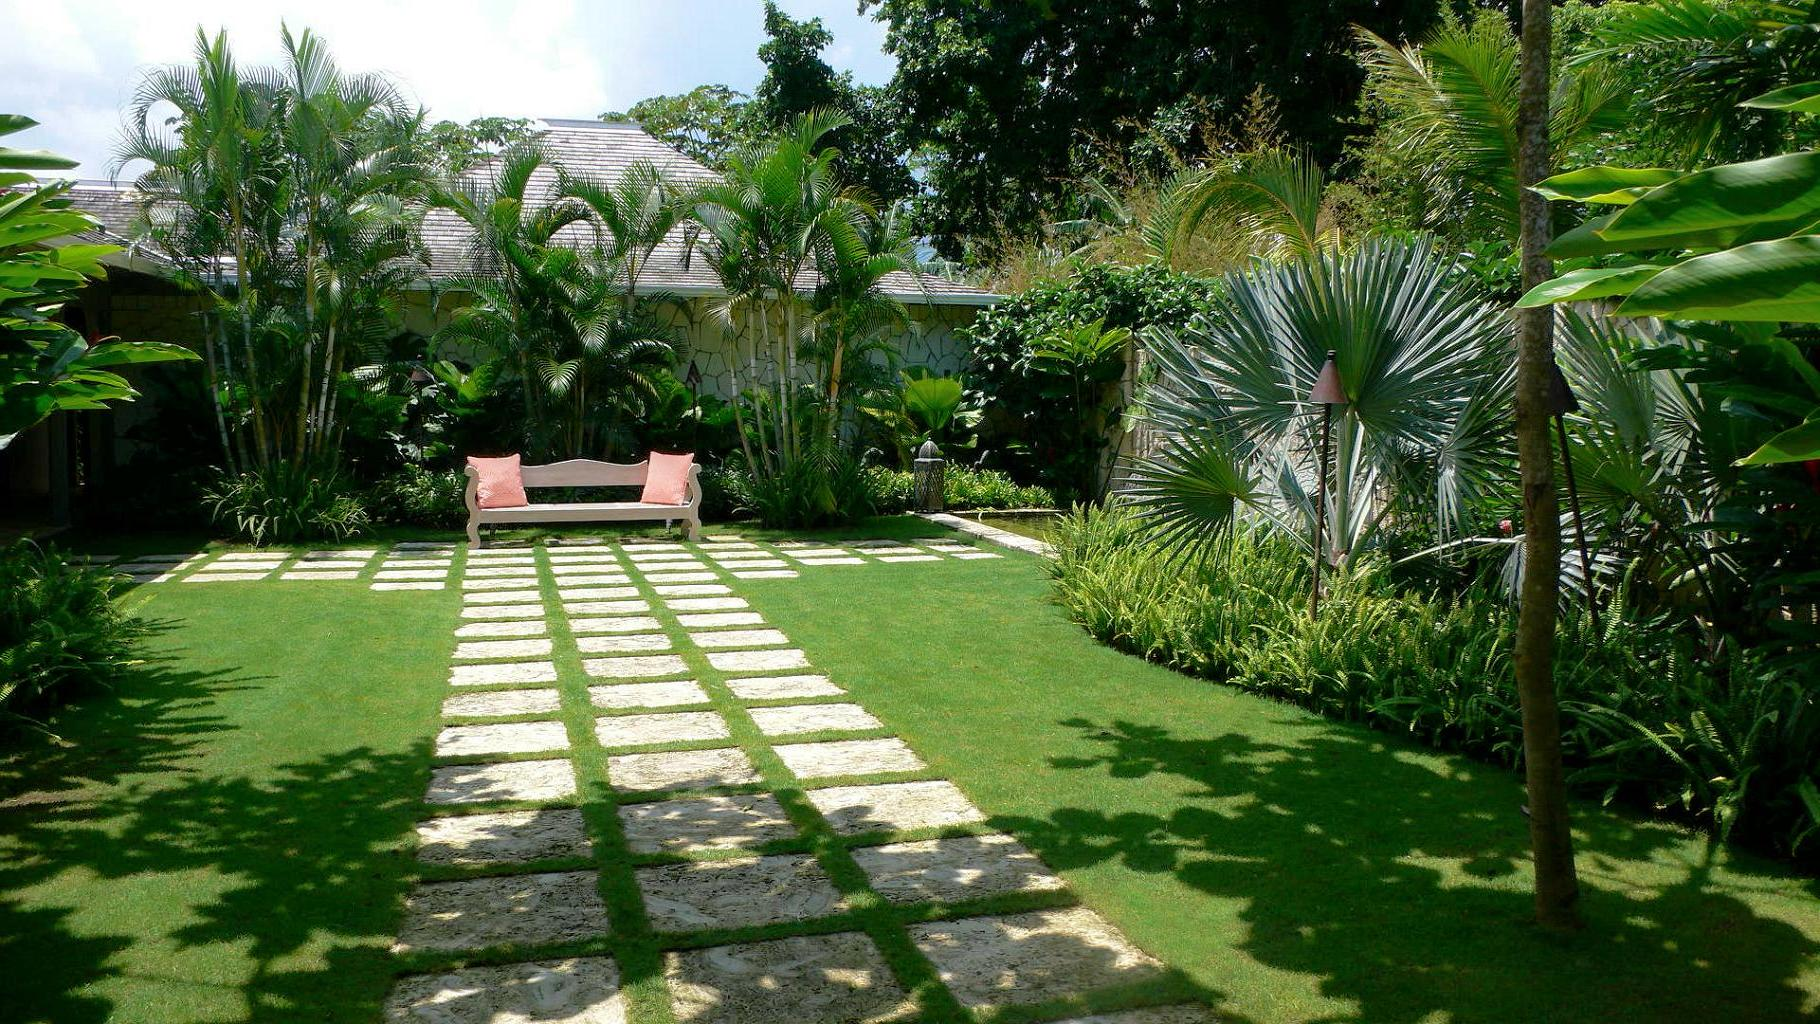 tropical garden design landscaping in brisbane queensland au - Garden Design Tropical